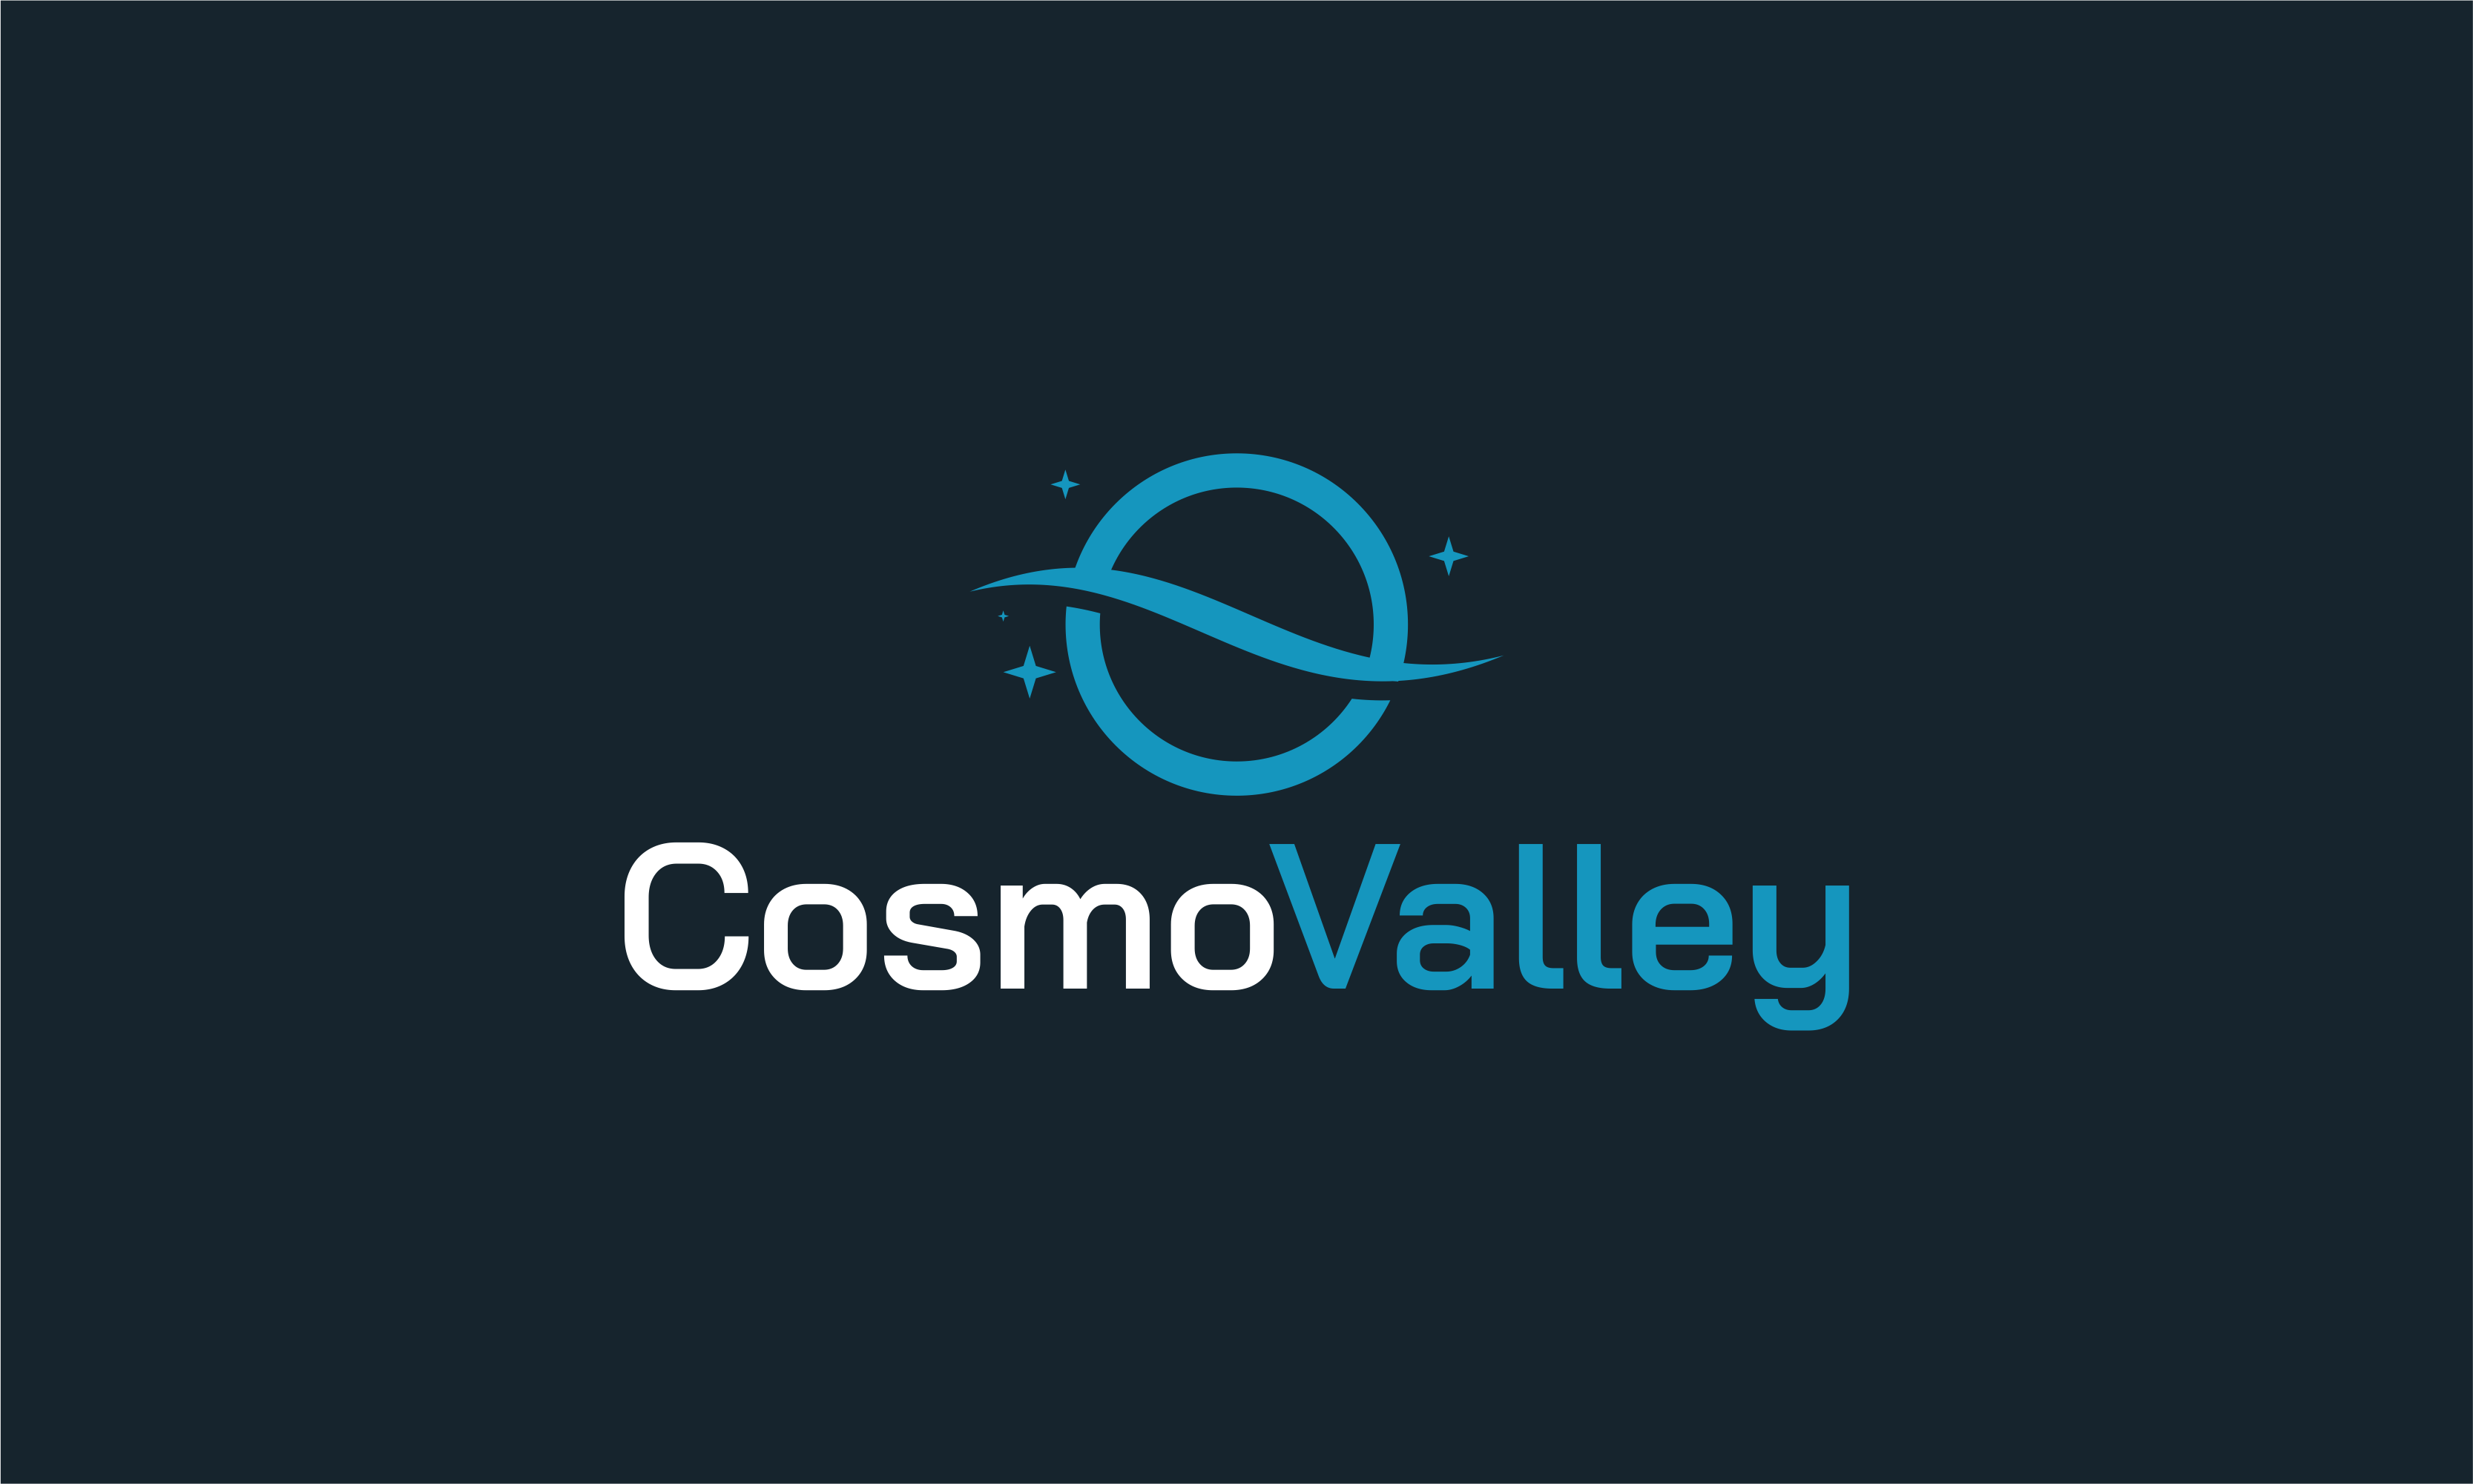 Cosmovalley